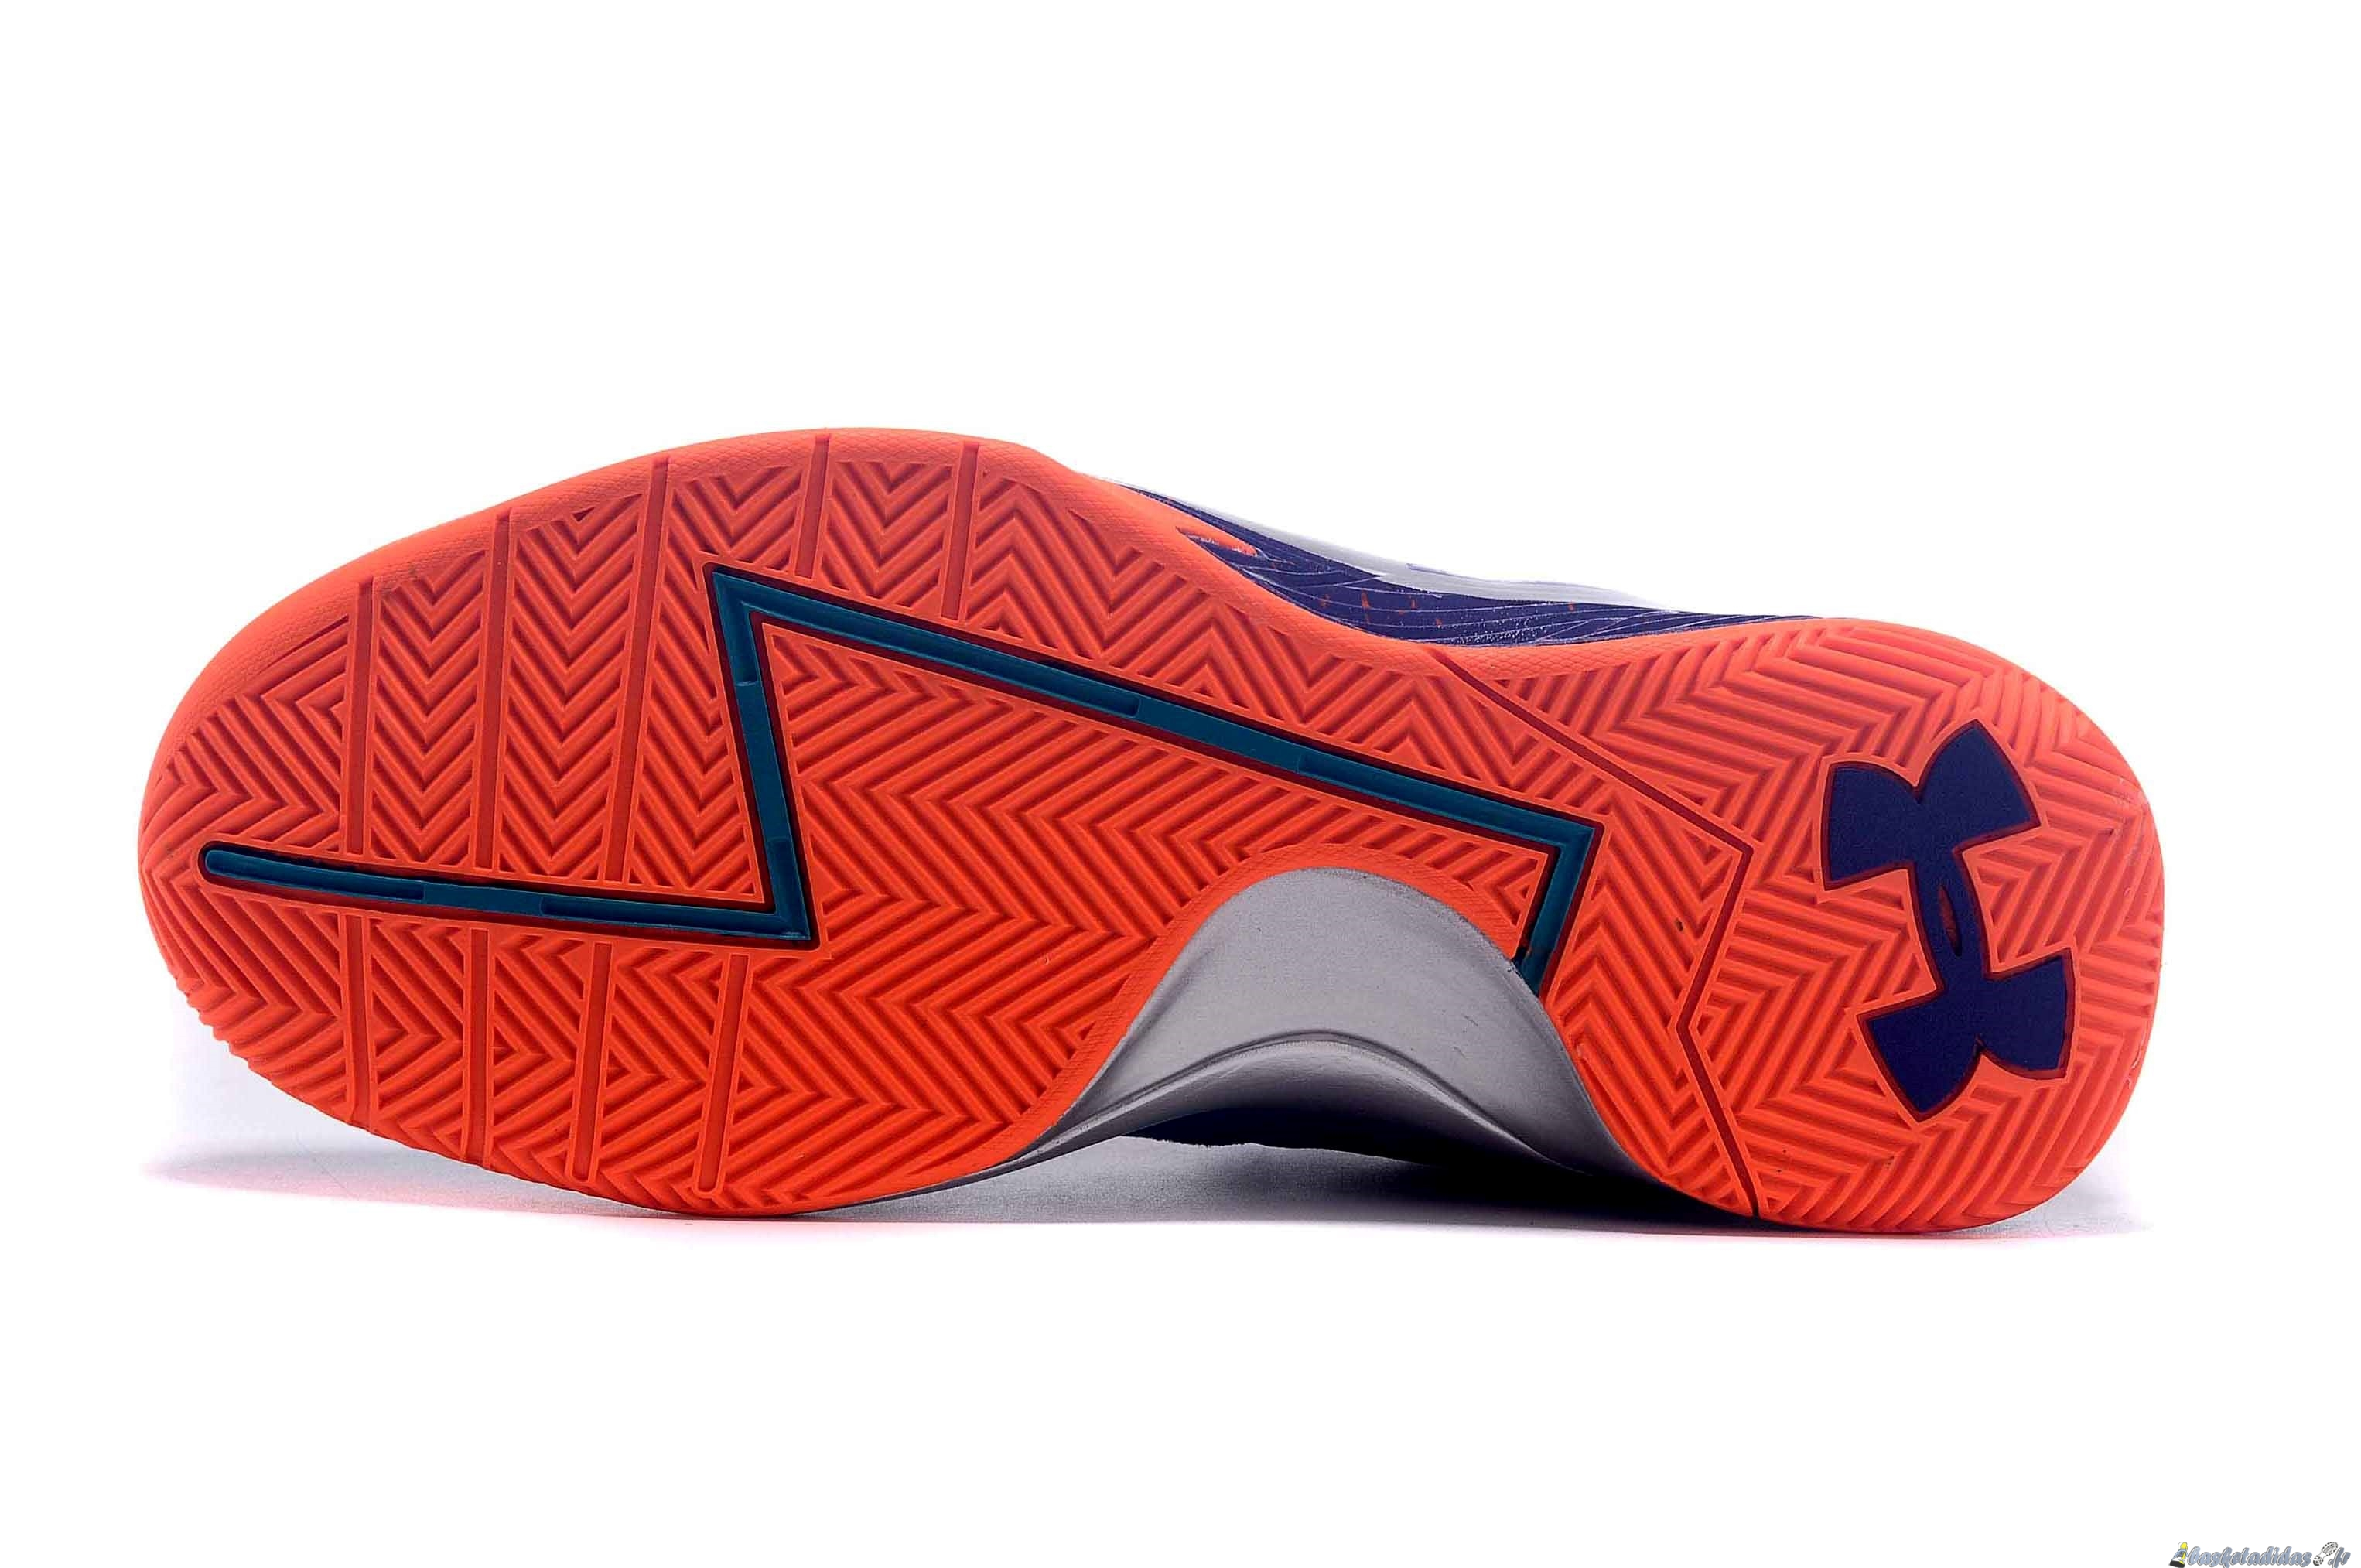 Chaussure de Basket Stephen Curry 1 Femme Bleu Orange